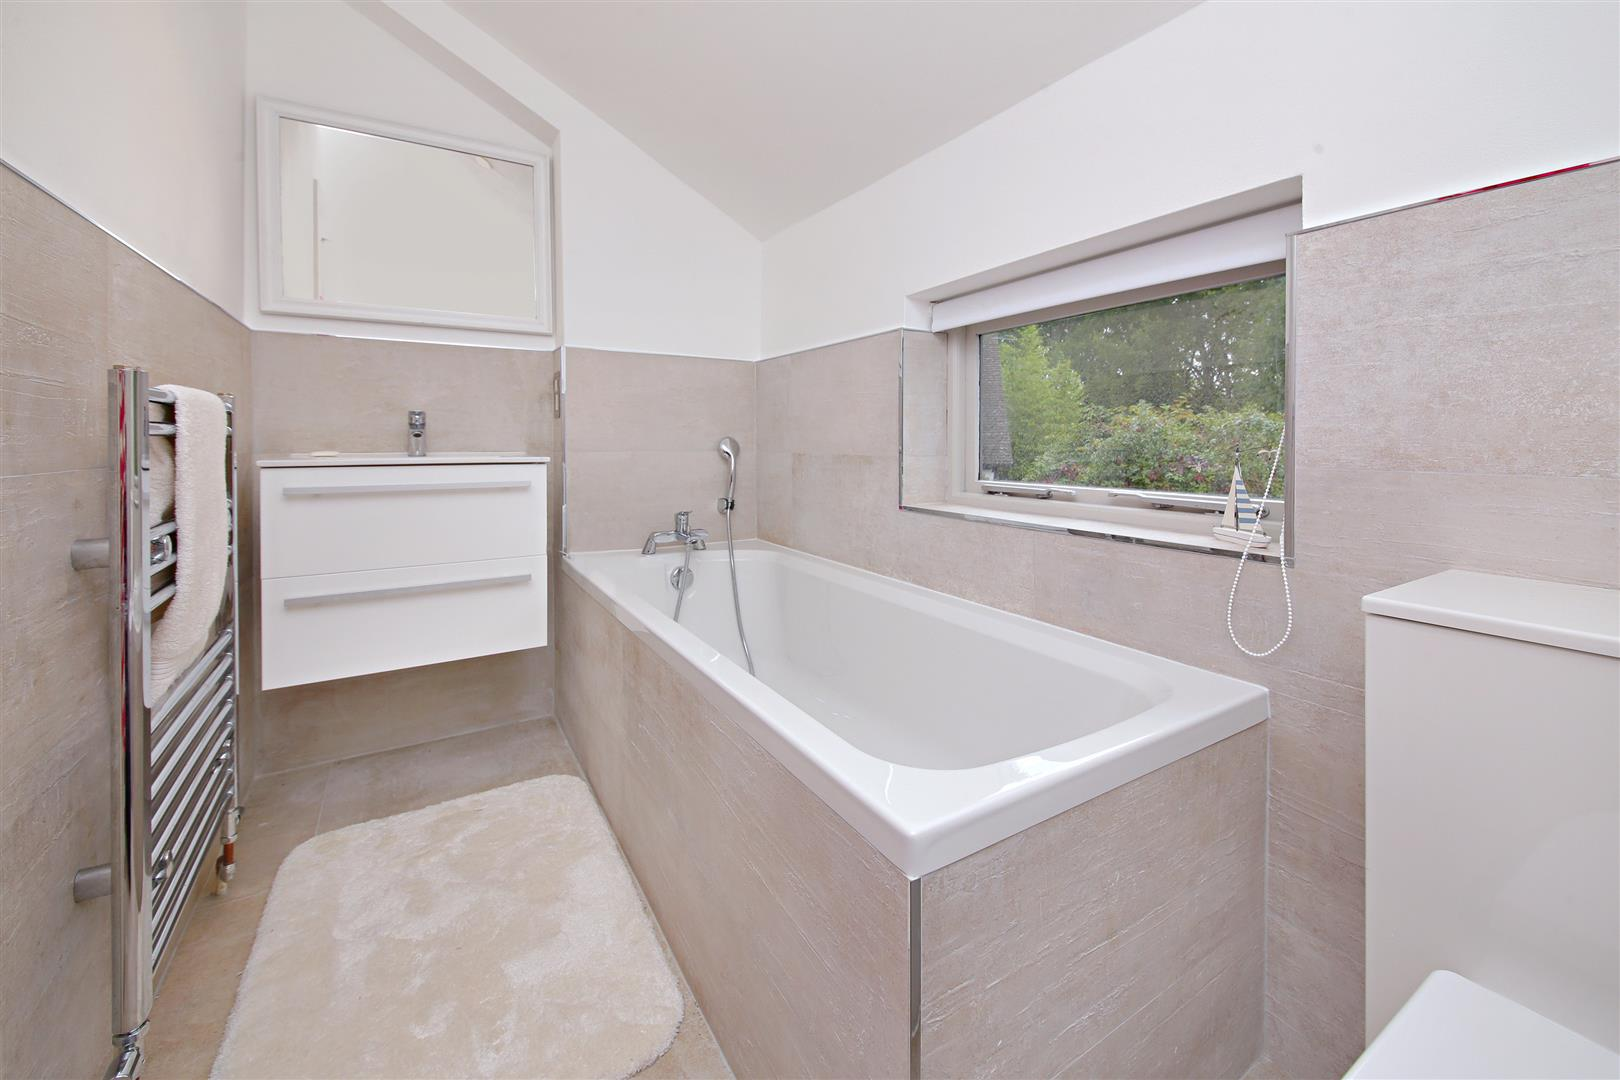 5 bed to rent in Letchmore Heath - (Property Image 11)